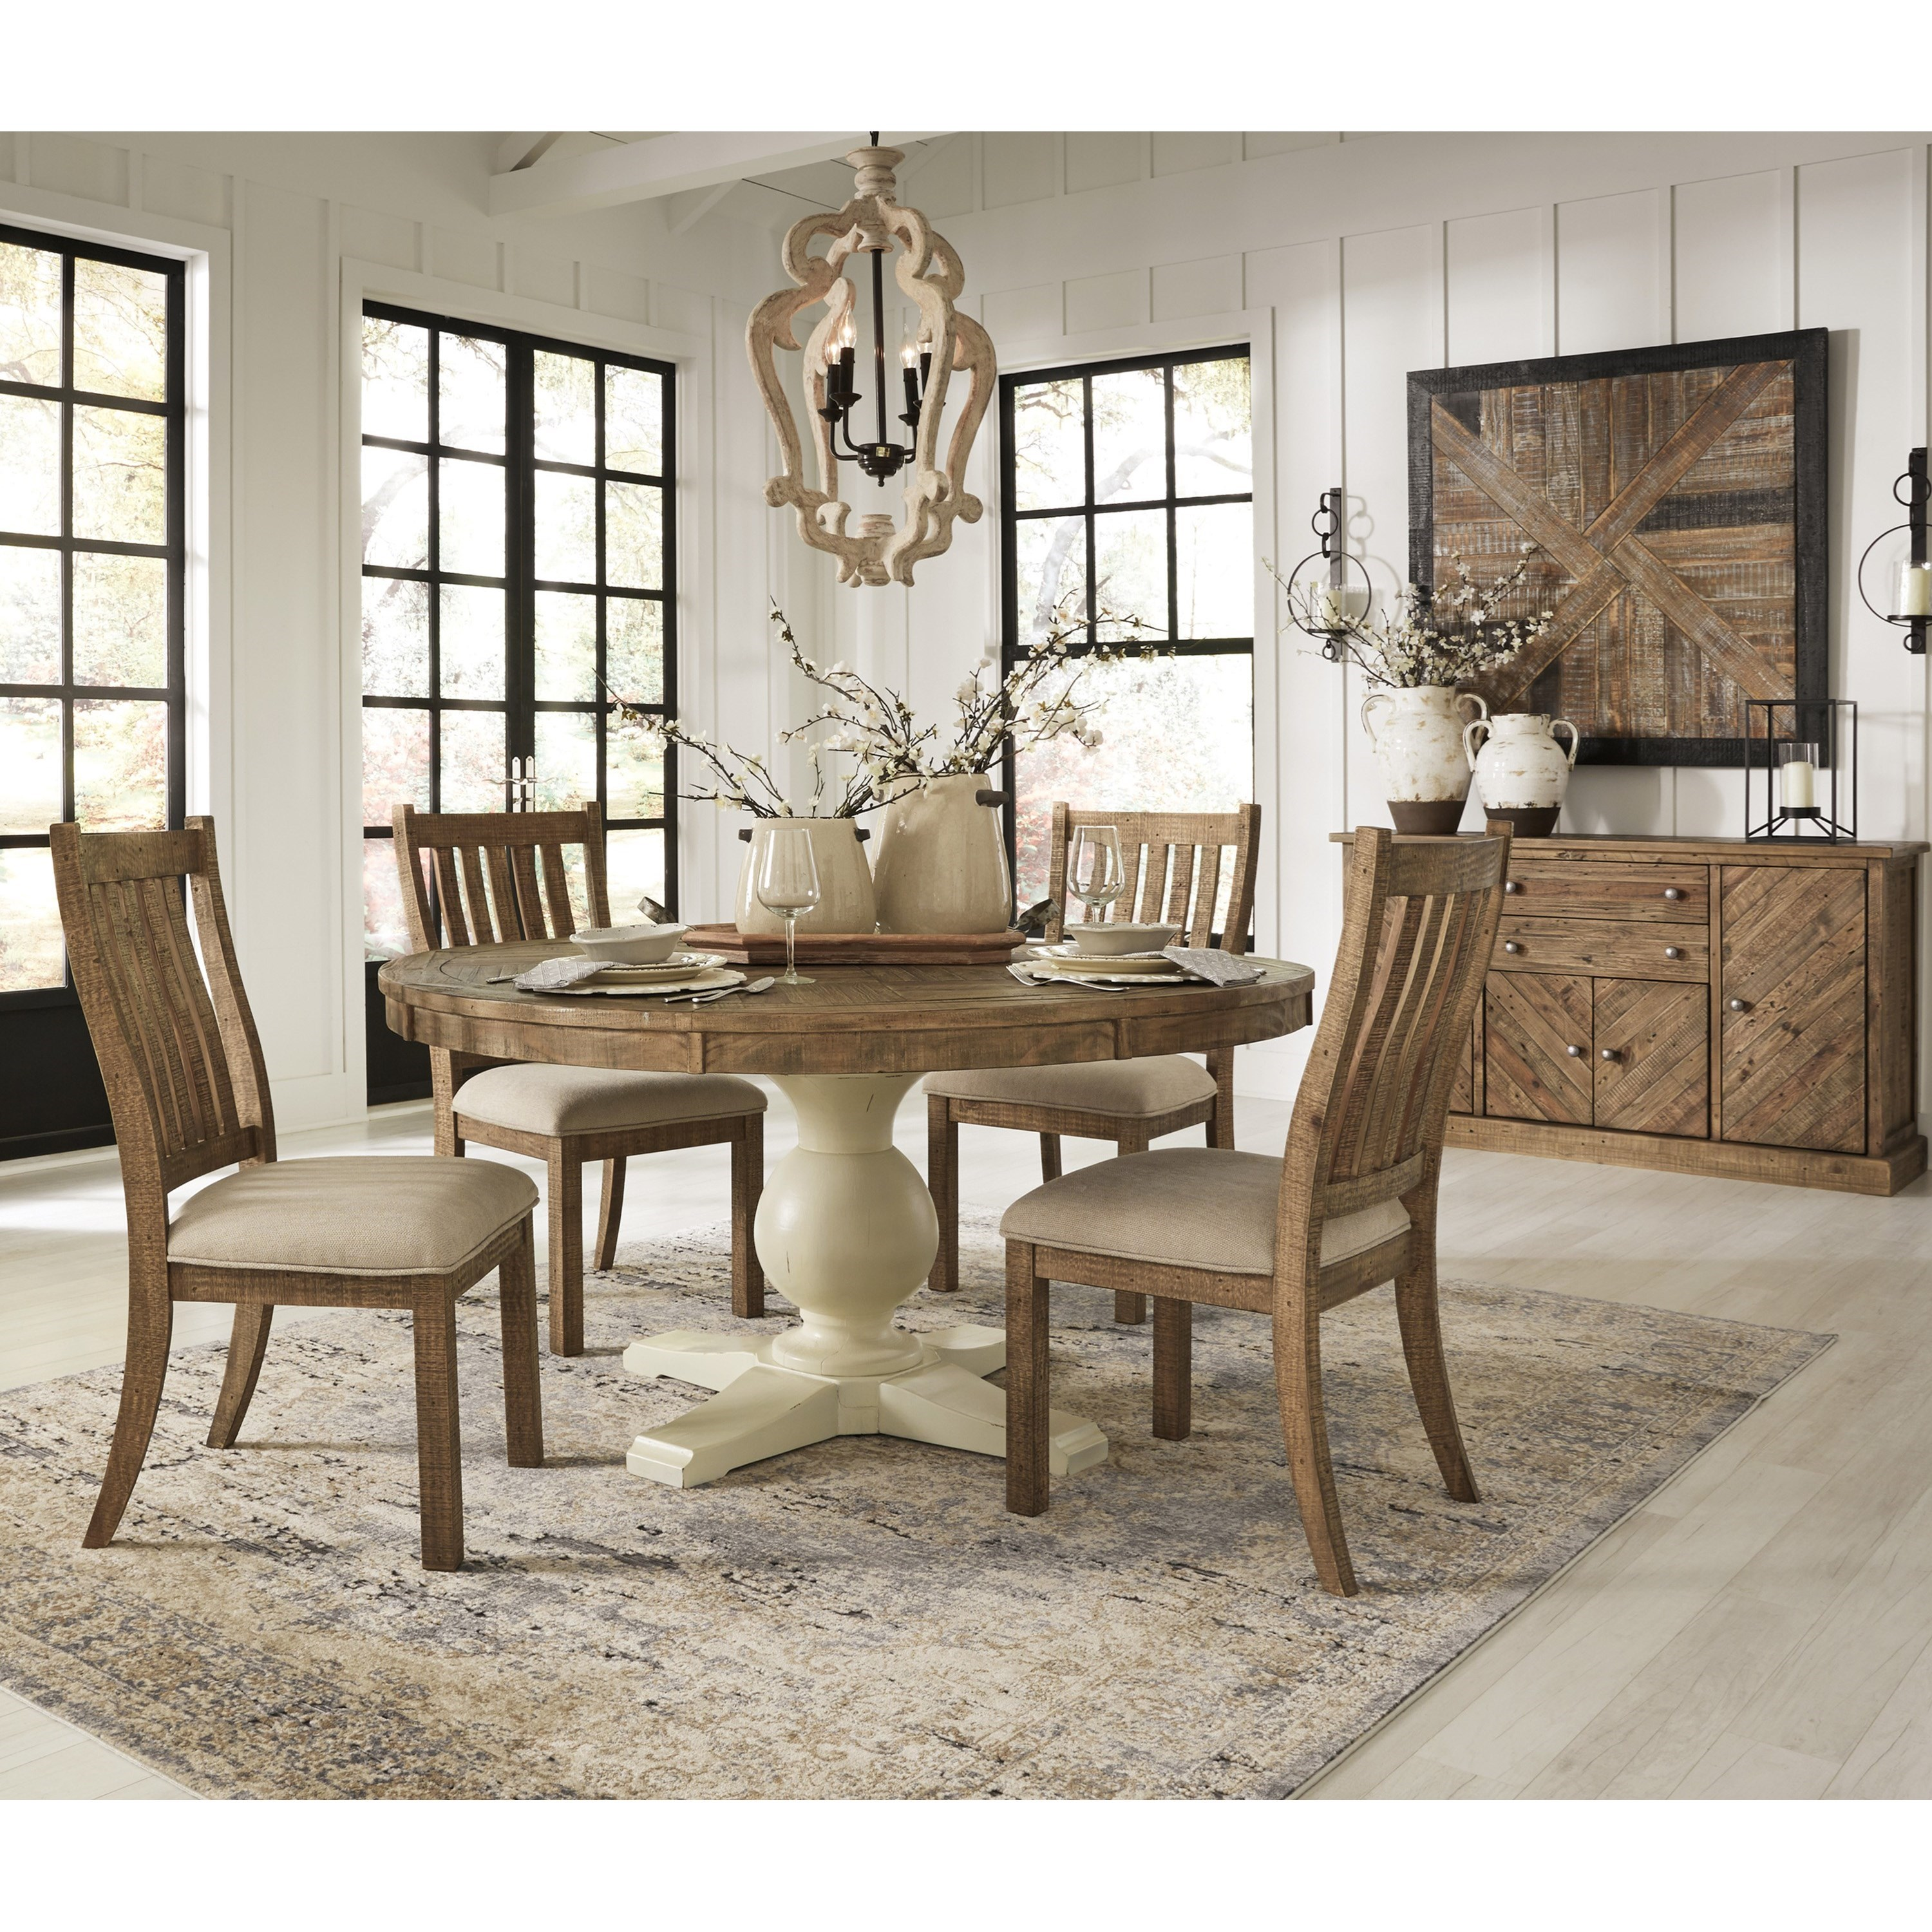 Ashley D754 05: Signature Design By Ashley Grindleburg Casual Dining Room